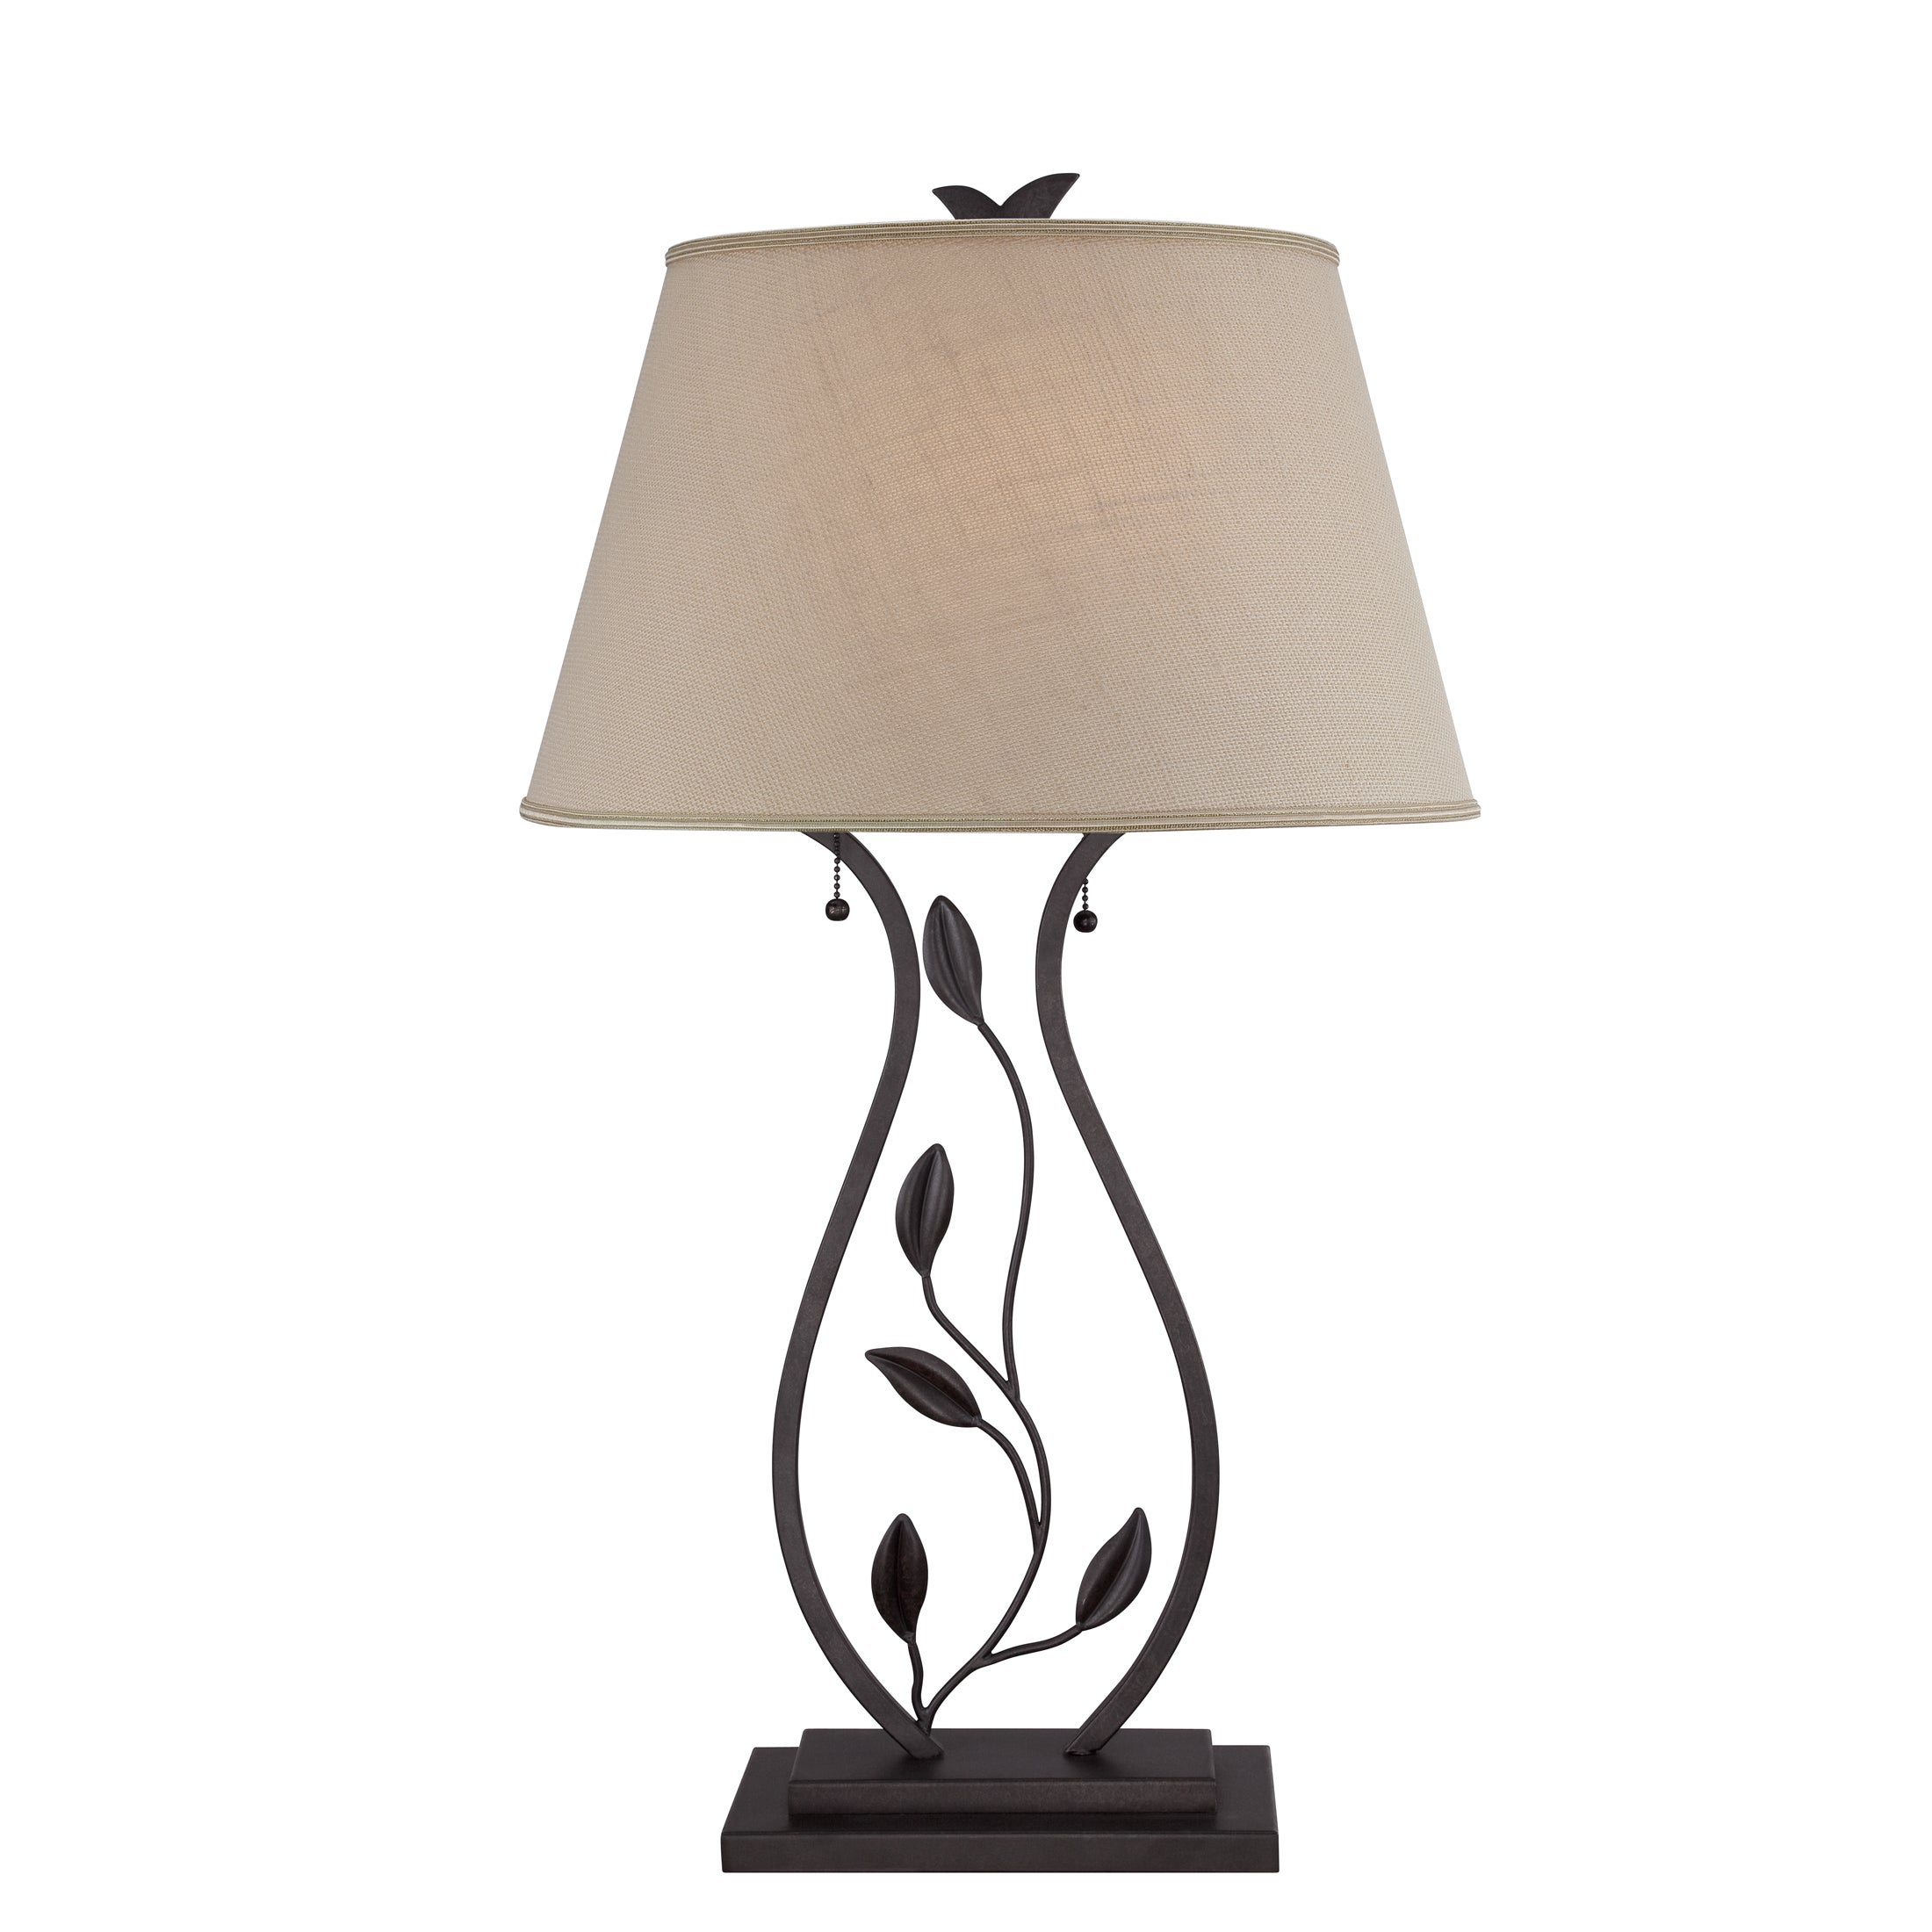 Quoizel Lively 2-light Imperial Bronze Table Lamp at Sears.com